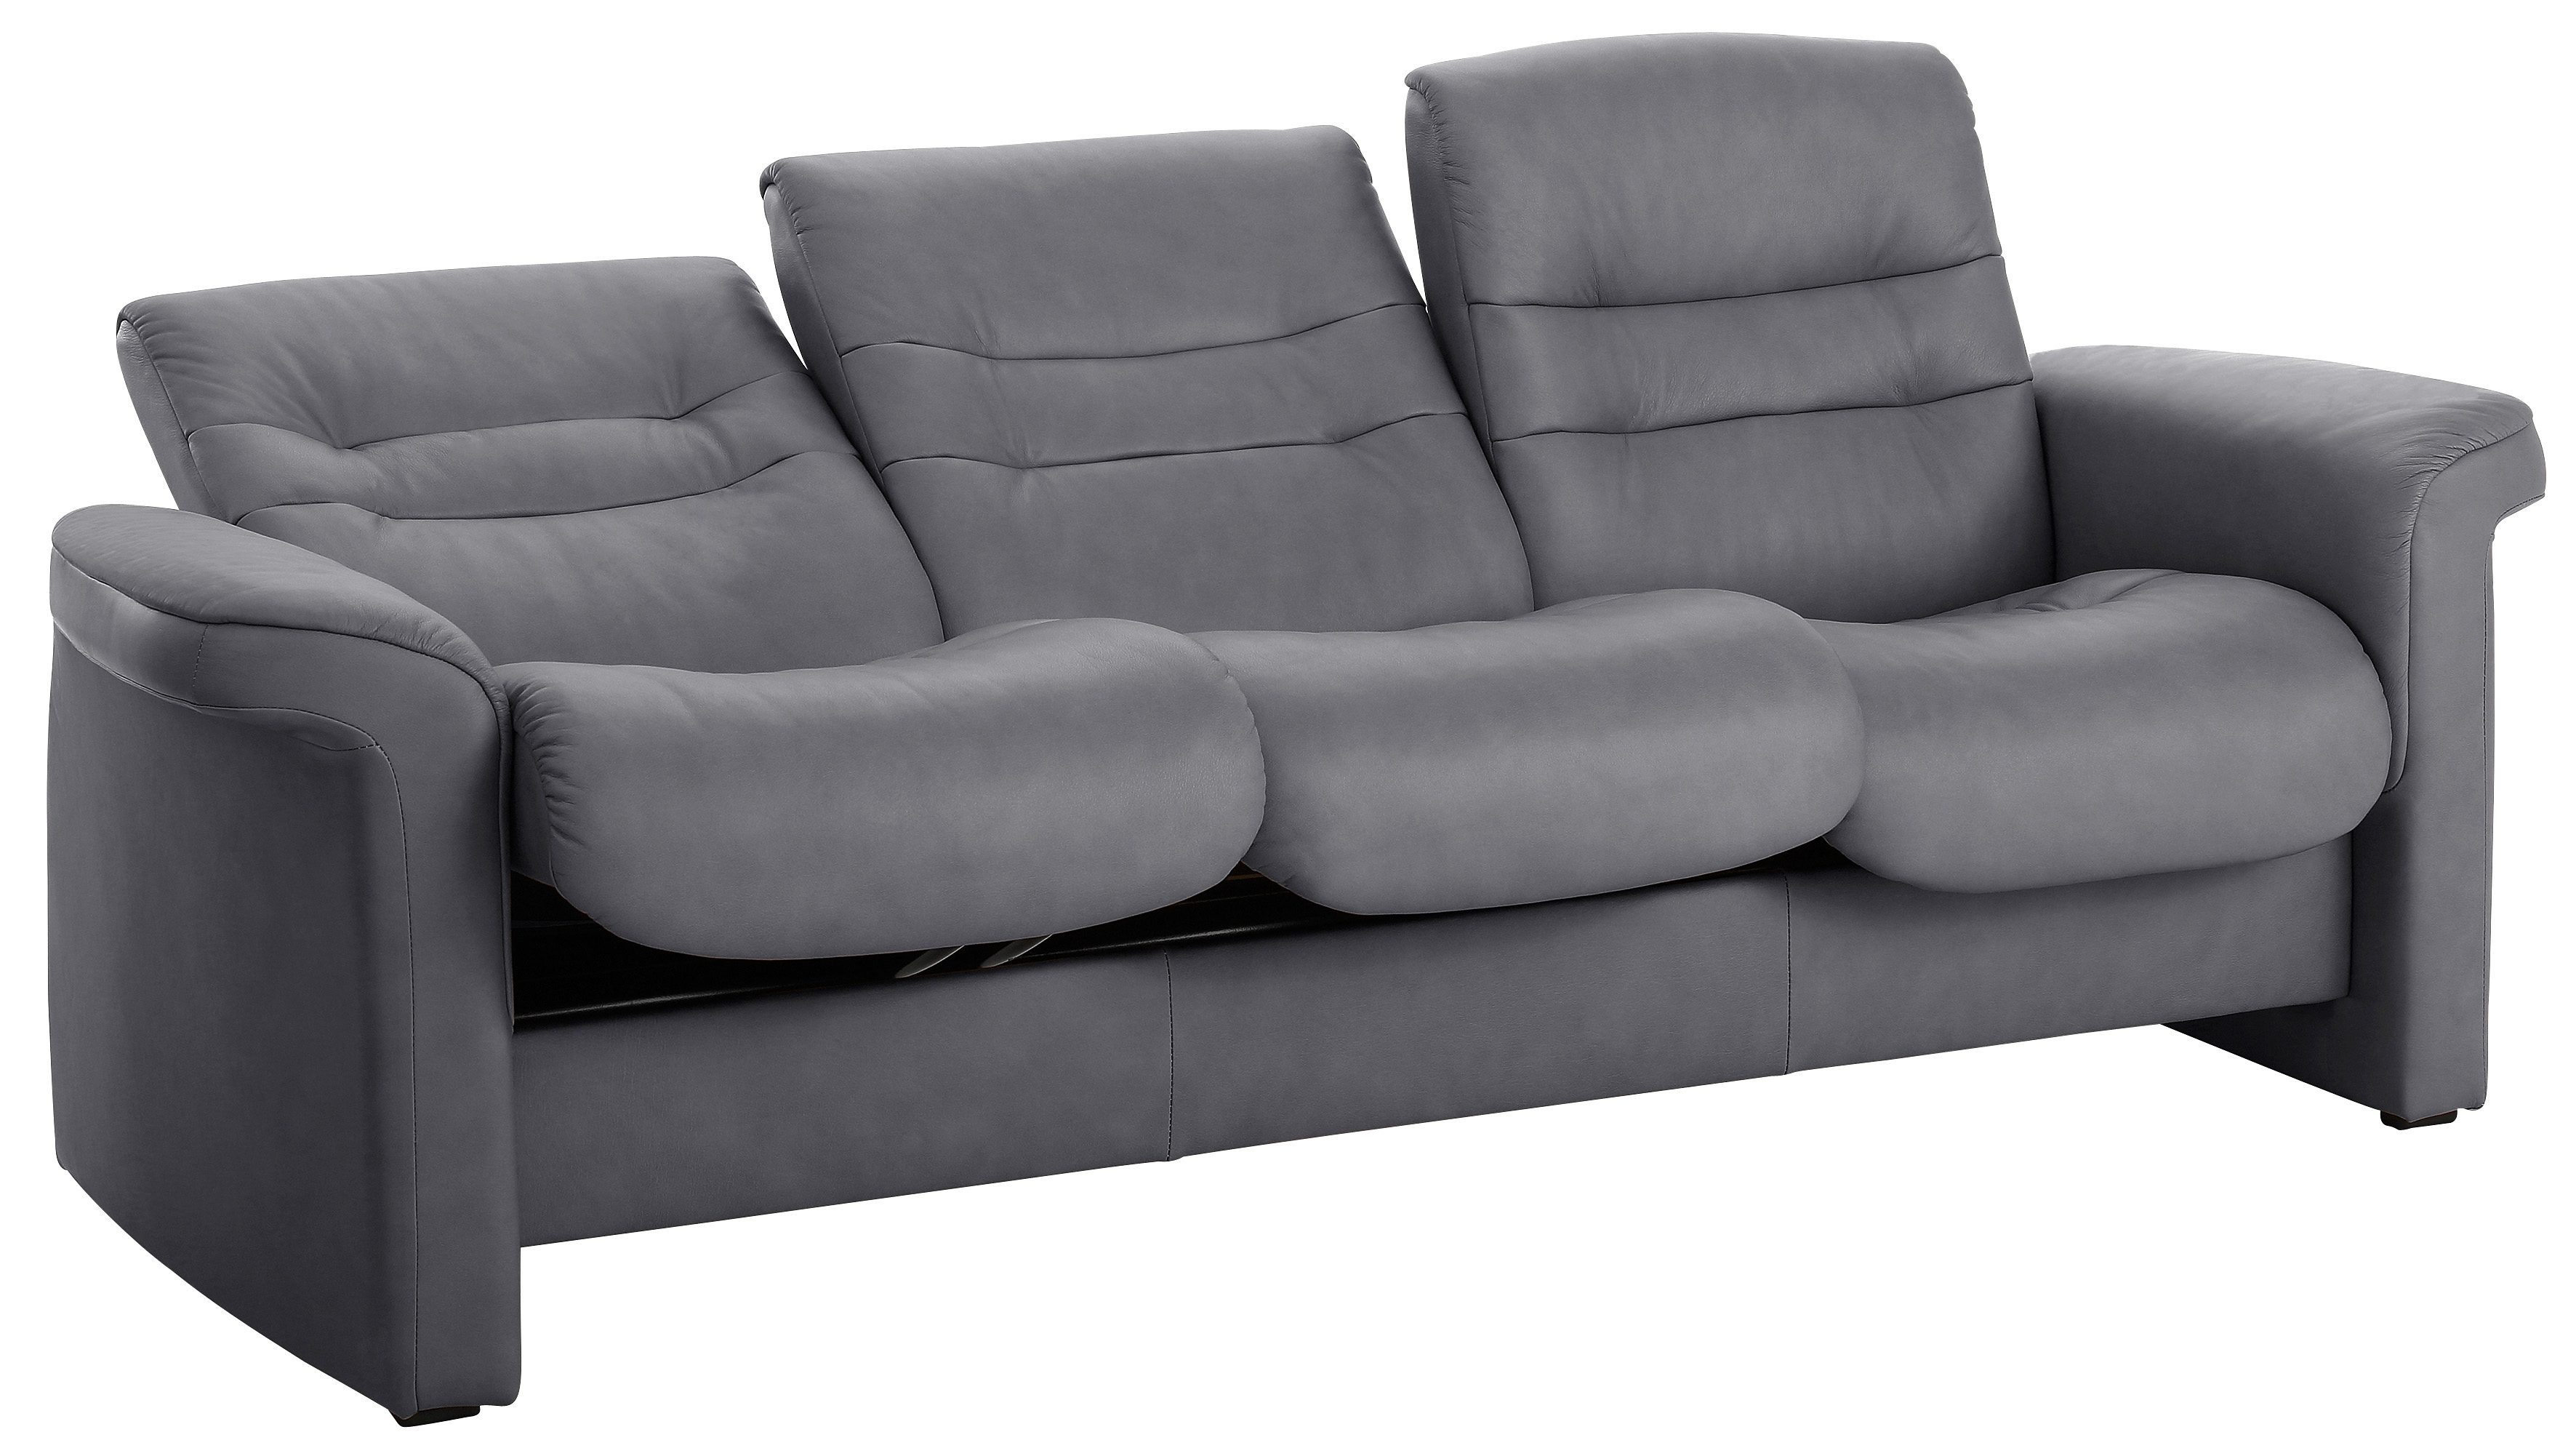 Couches And Sofas Sale